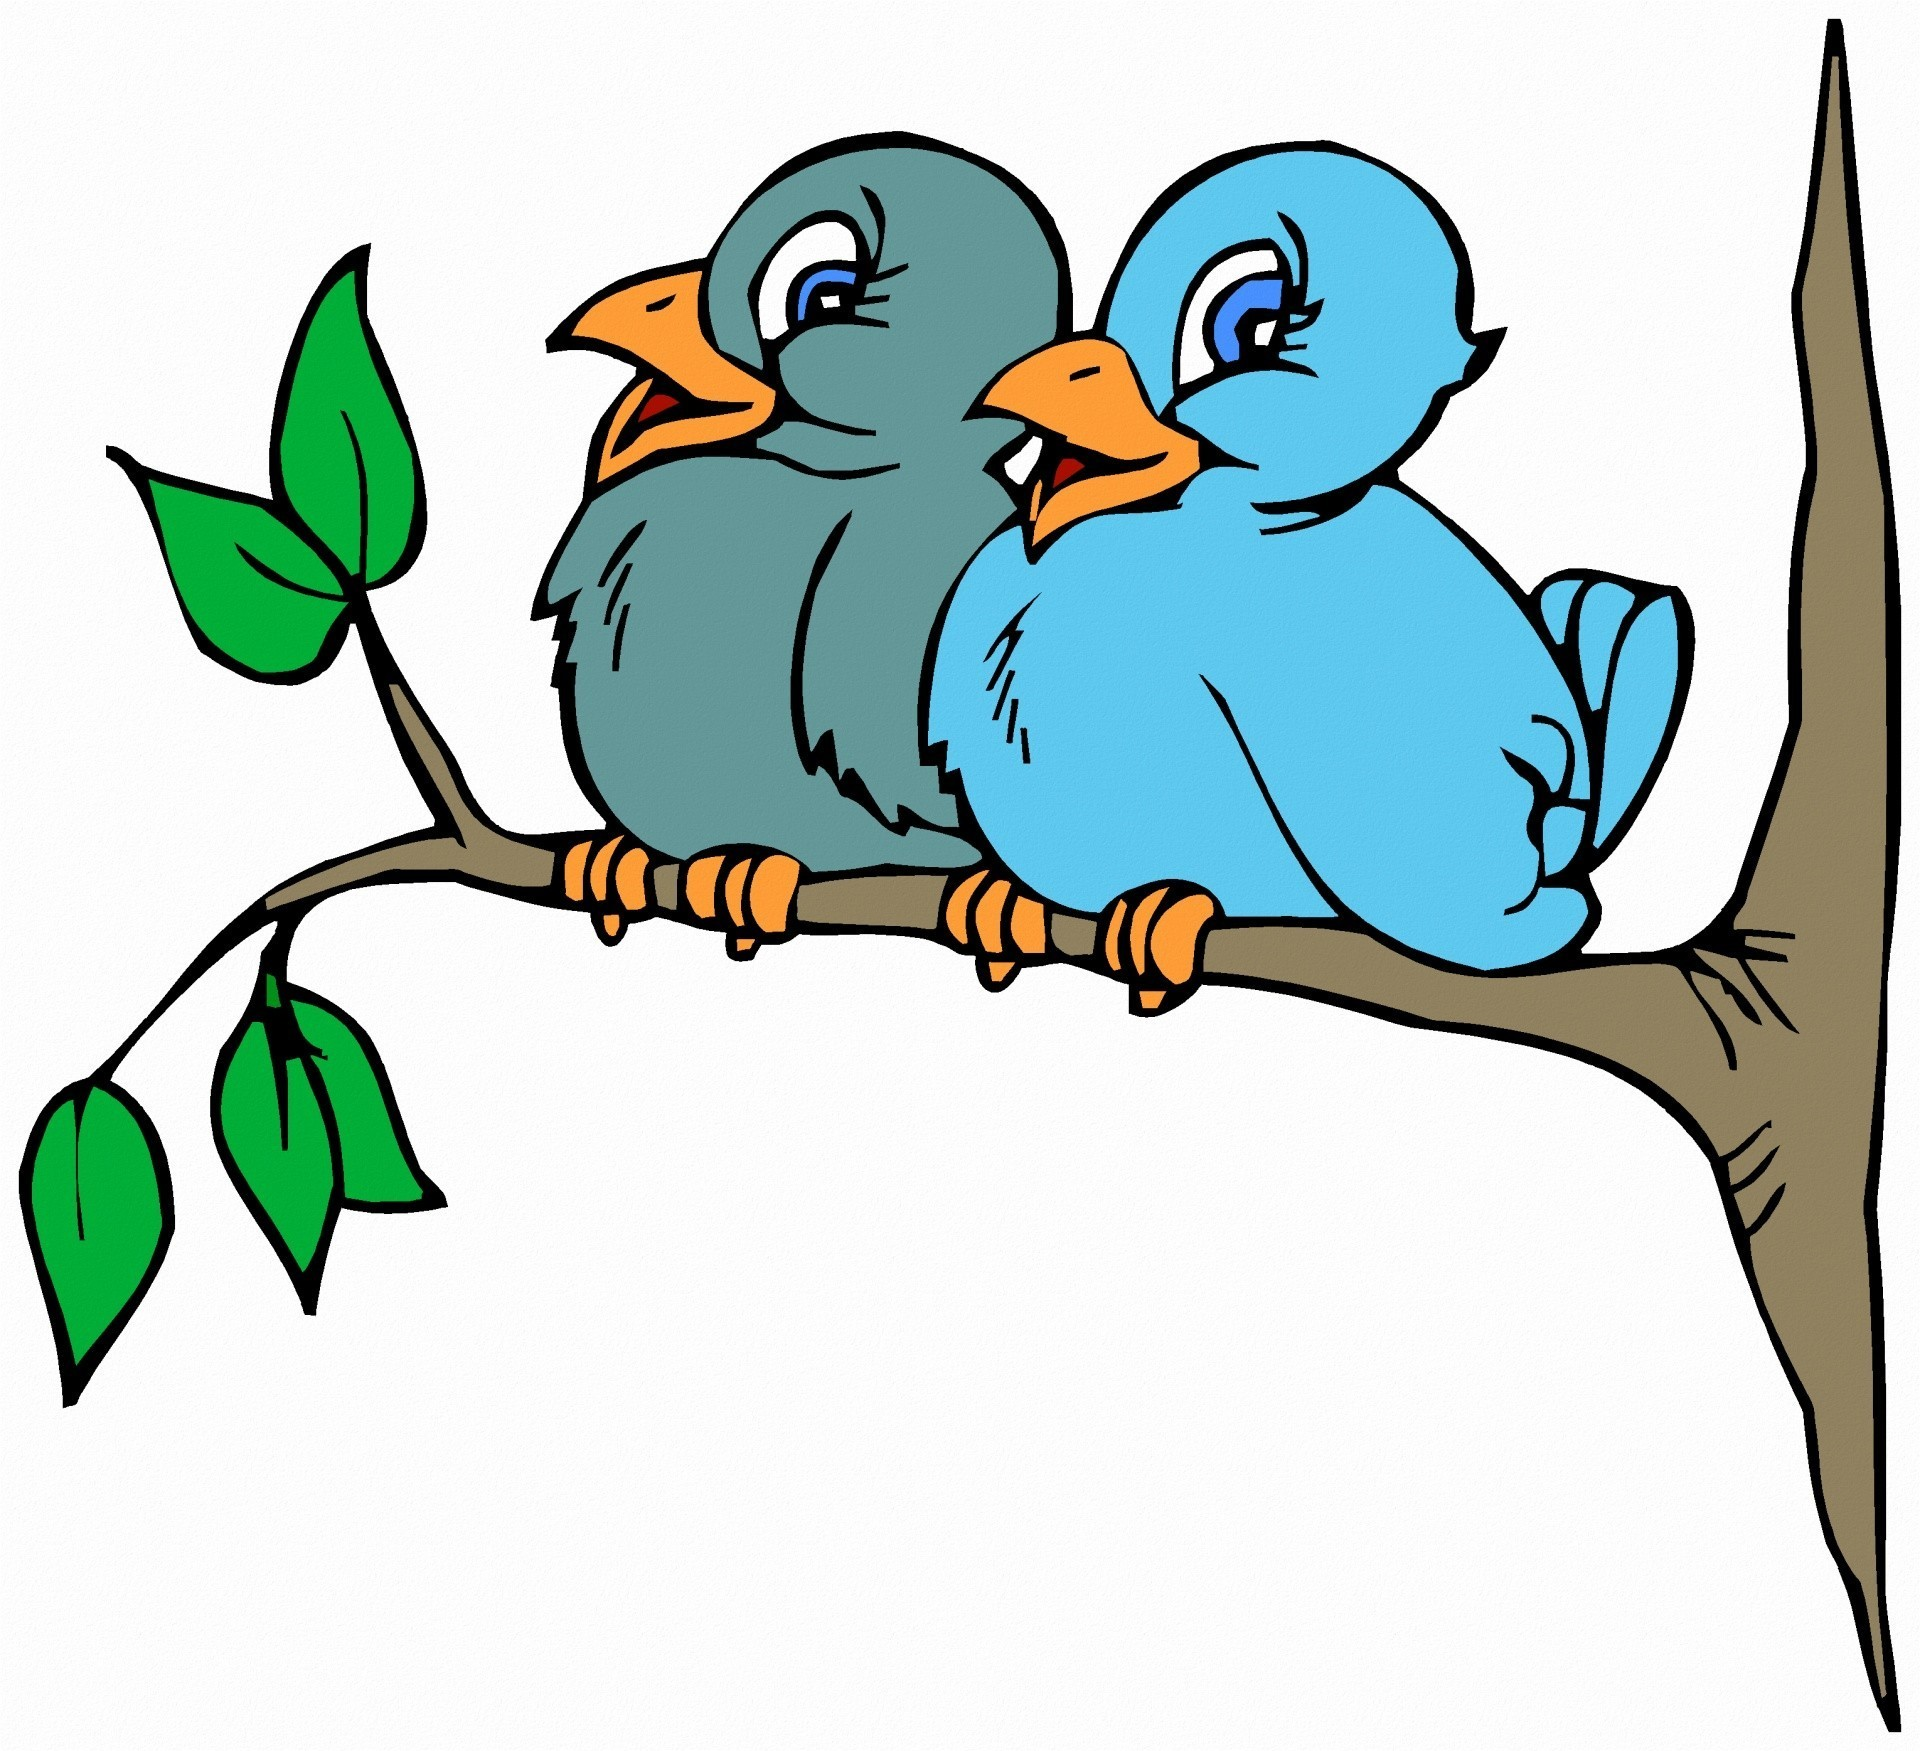 Bird on a tree clipart jpg library library Clipart Of Birds In Trees | Clip Art jpg library library